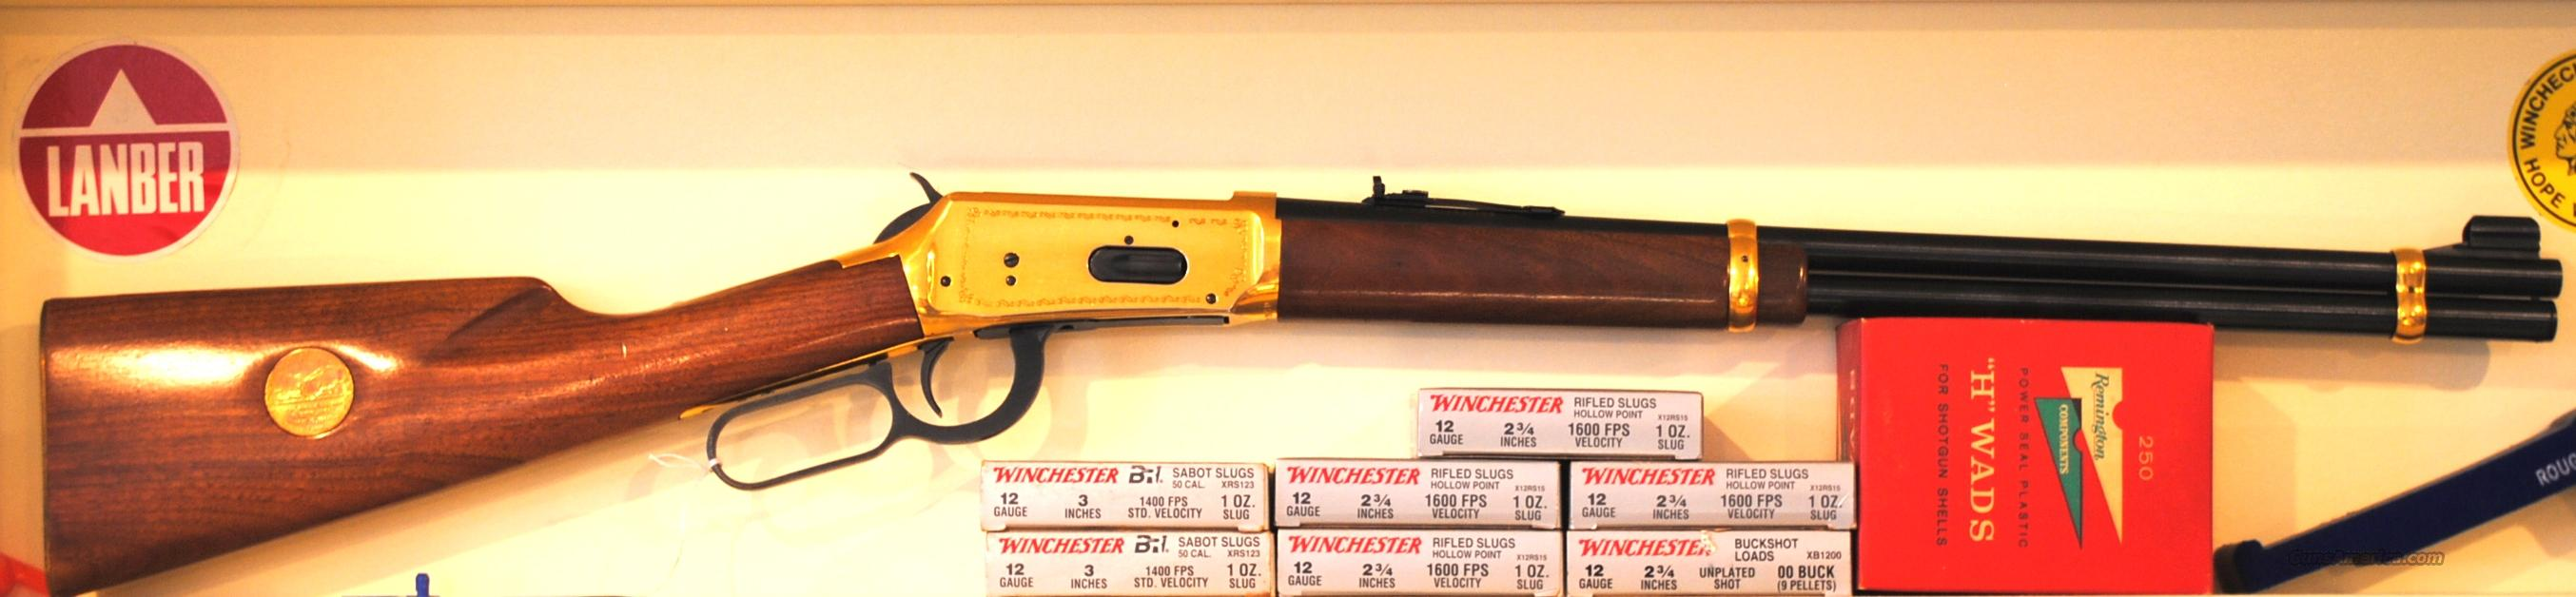 WINCHESTER 94 RR Commemorative   Guns > Rifles > Winchester Rifles - Modern Lever > Model 94 > Post-64